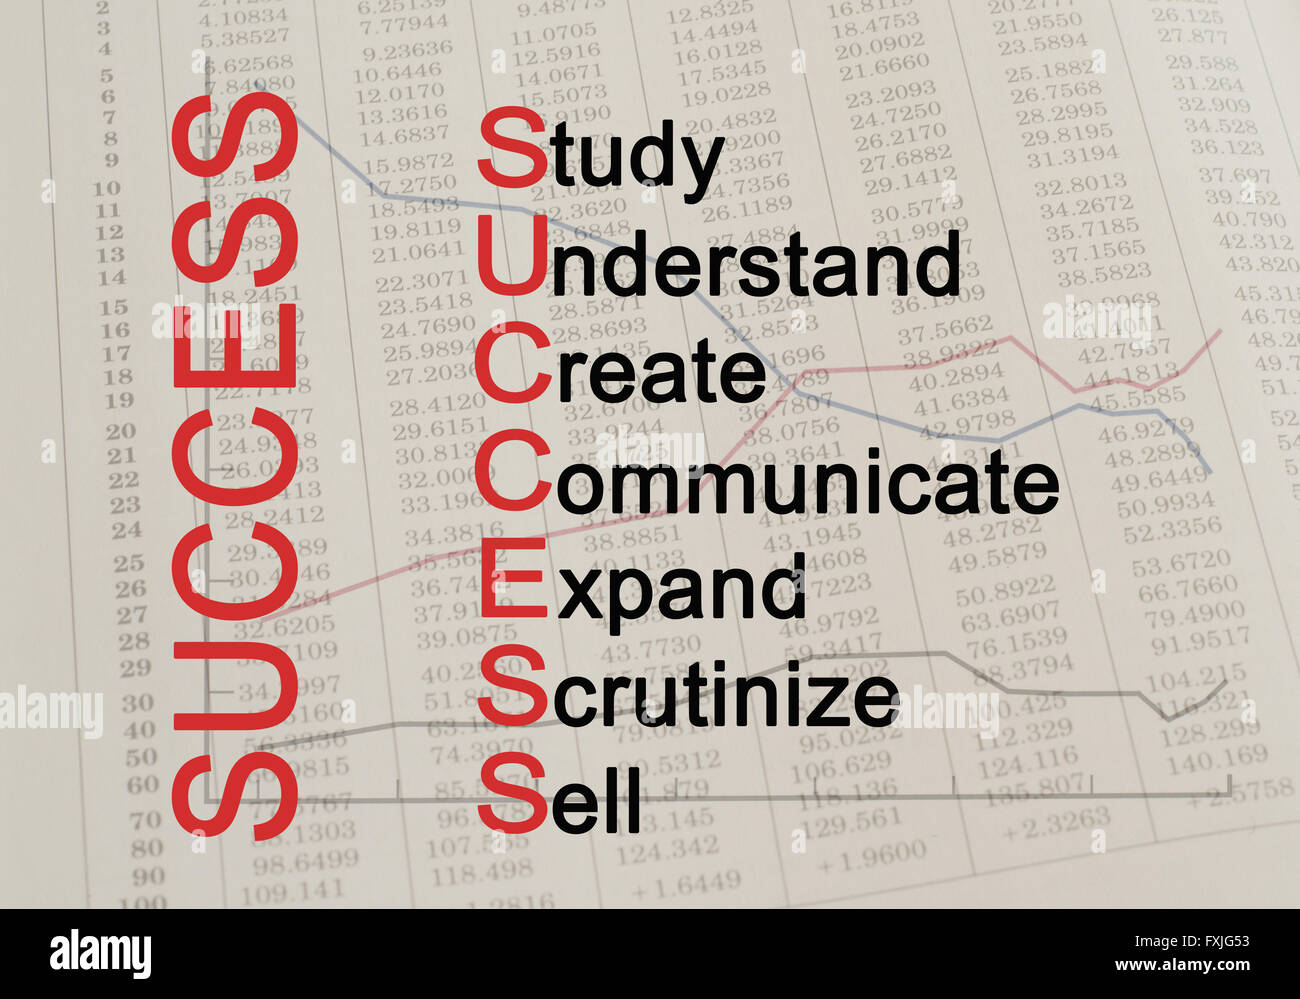 Acronym Success - Study, Understand, Create, Communicate, Expand, Scrutinize, Sell - Stock Image